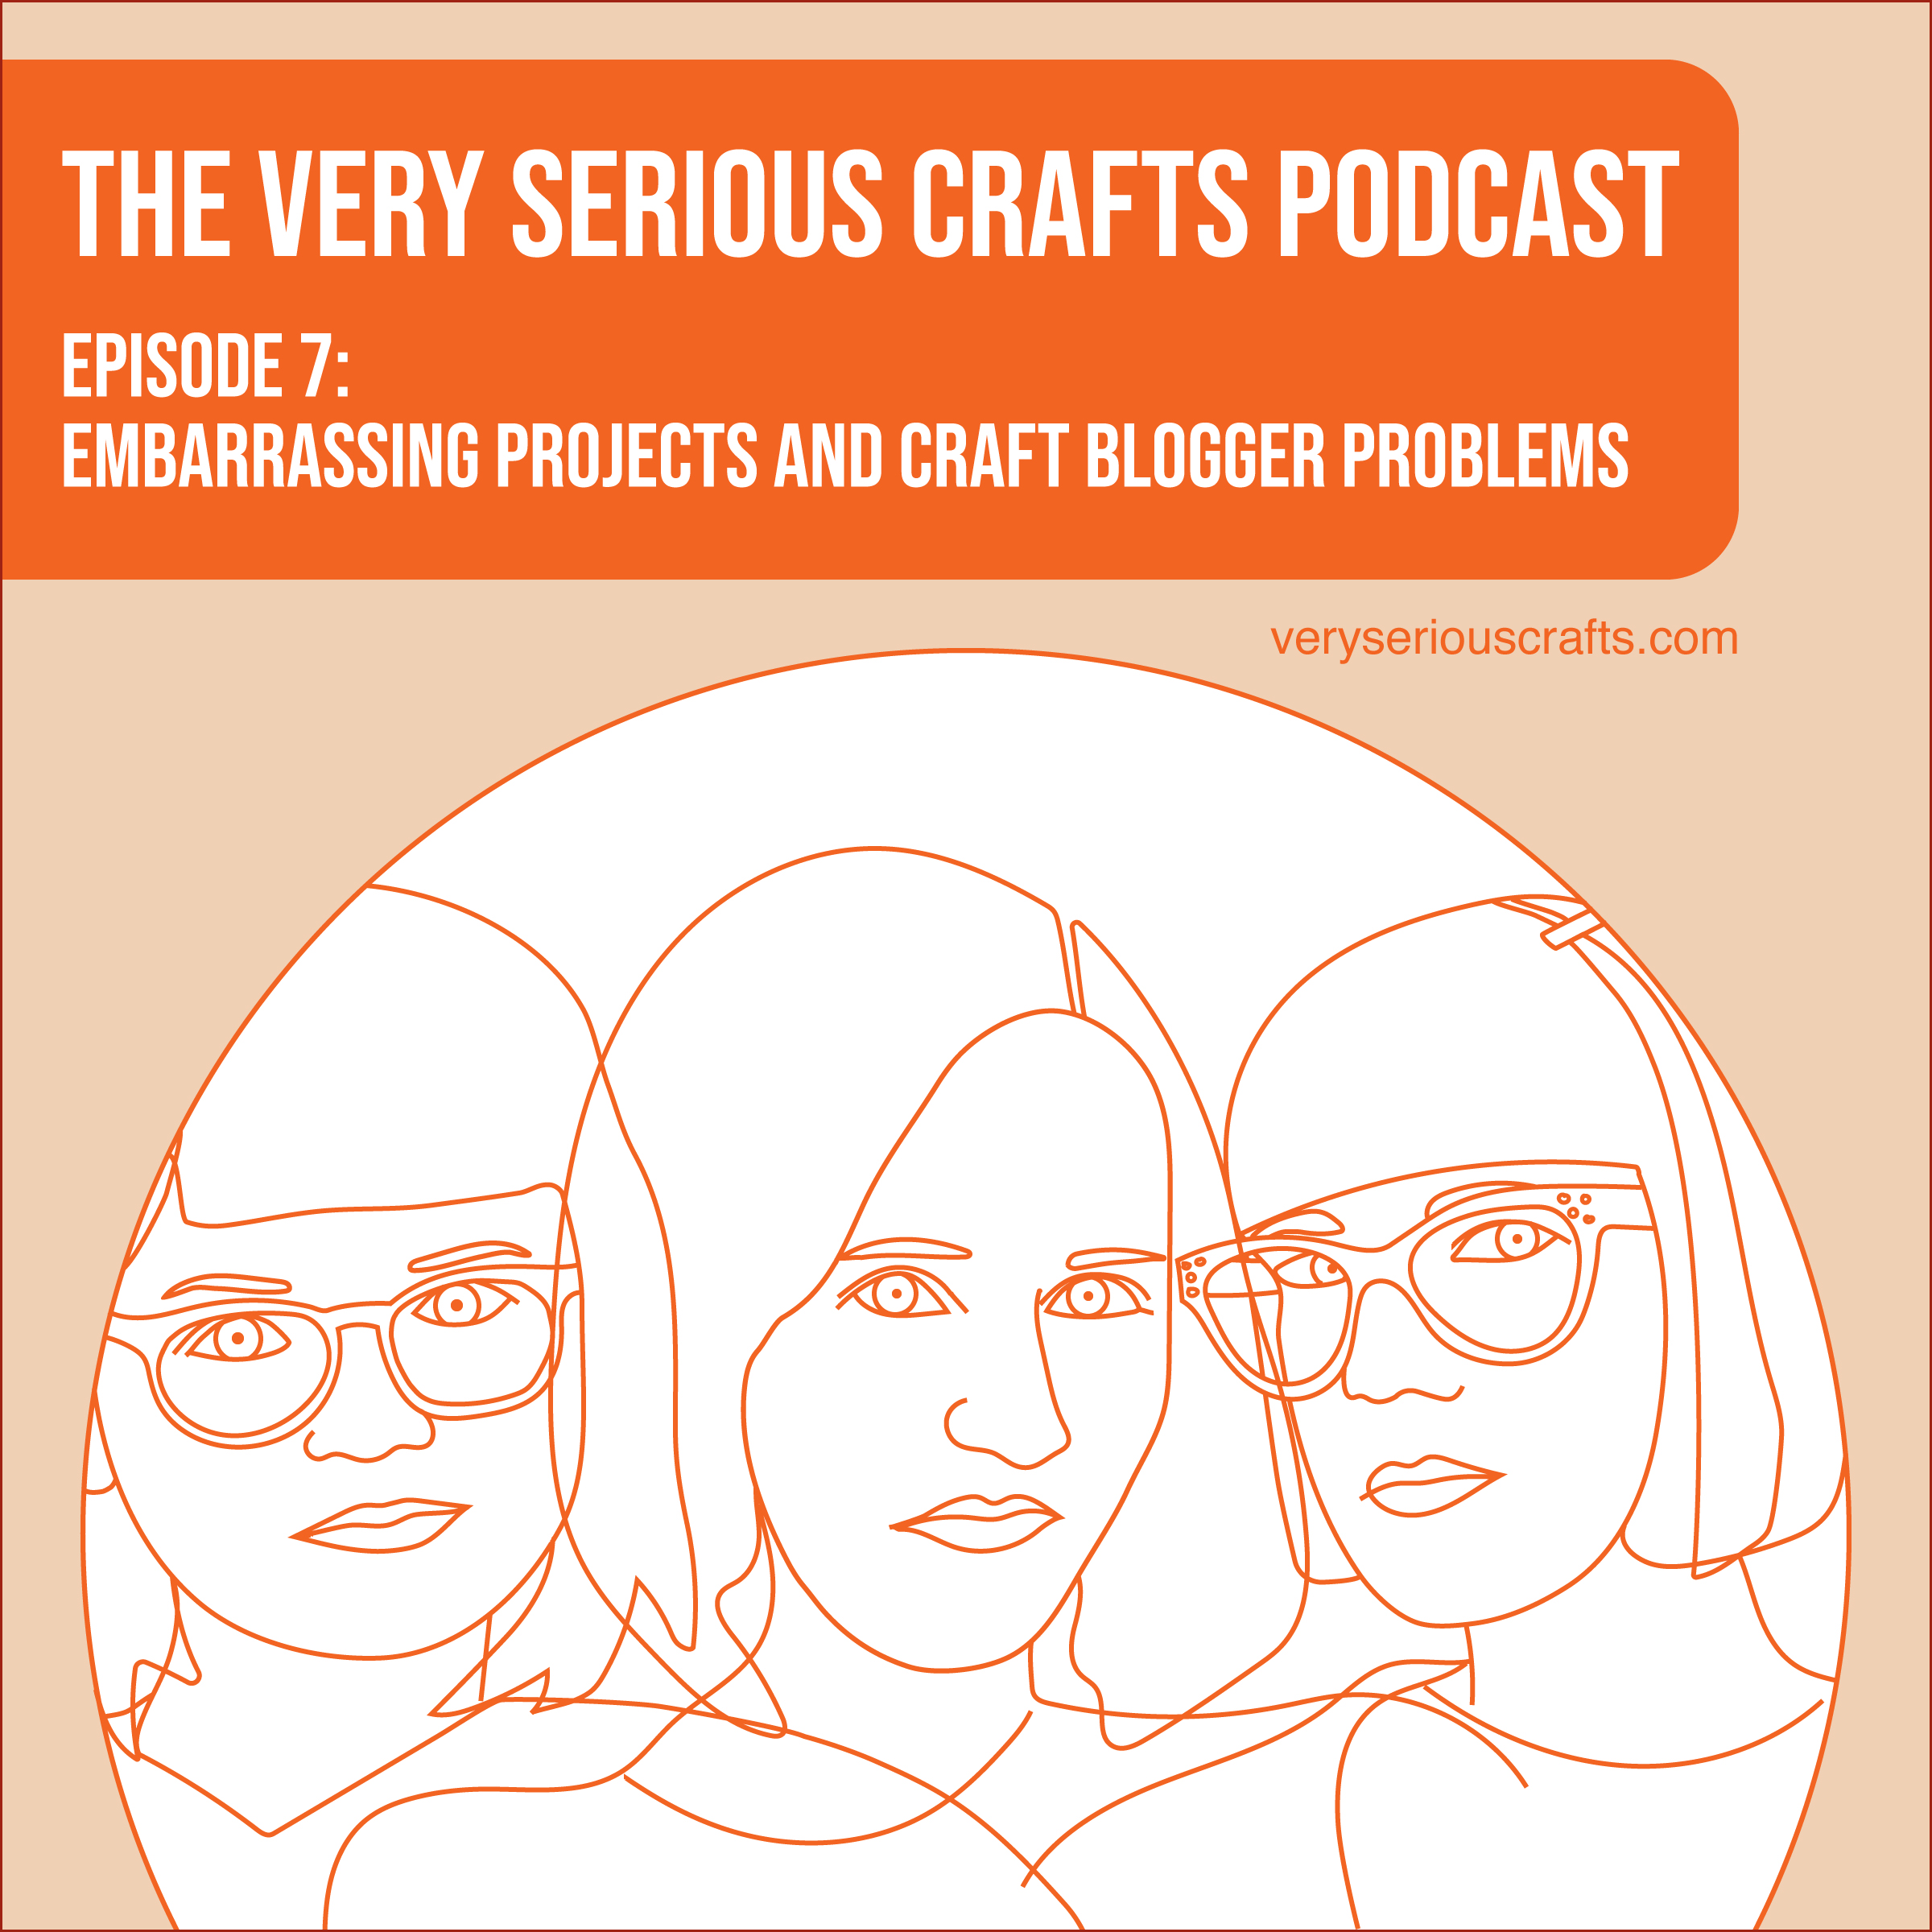 S1E07: Embarrassing Projects and Craft Blogger Problems